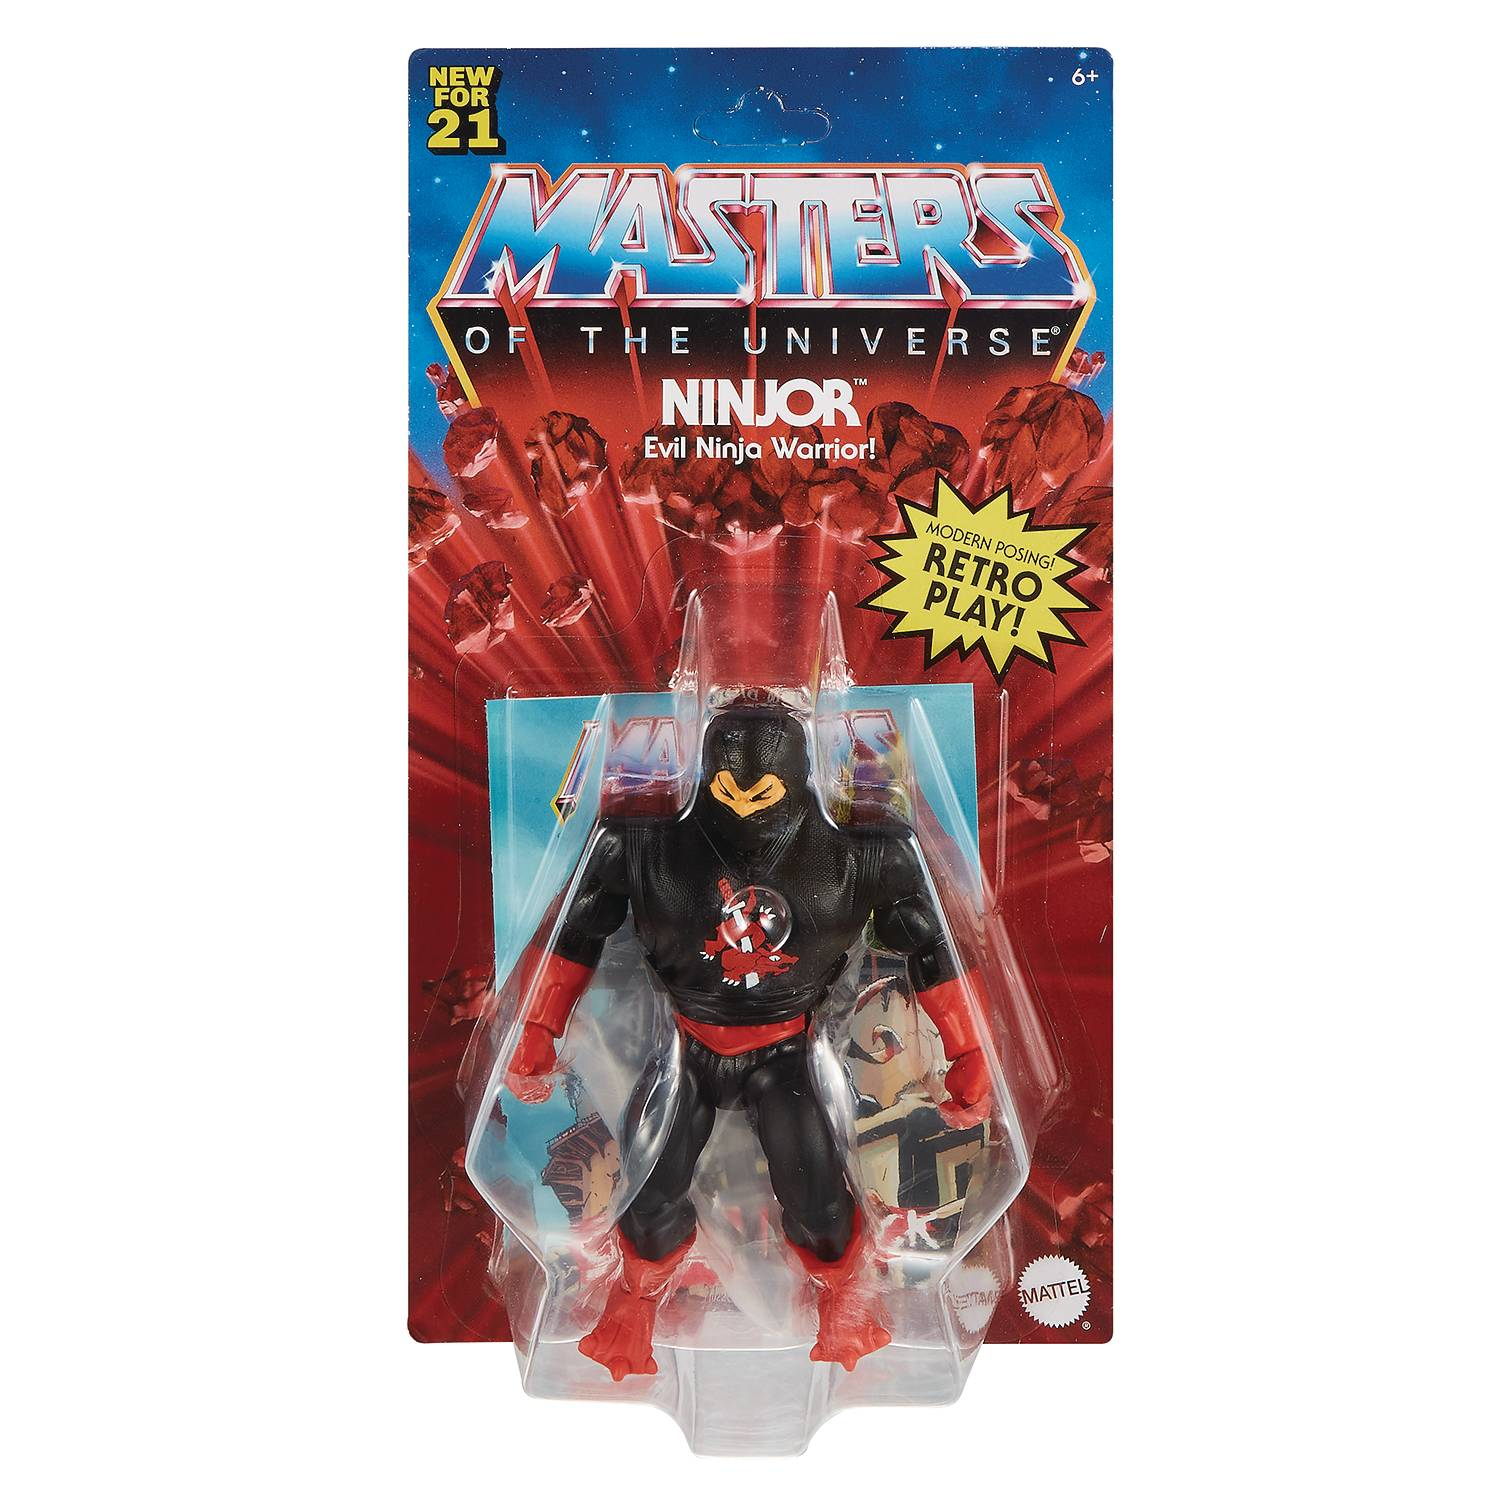 NINJOR - MASTERS OF THE UNIVERSE ORIGINS ACTION FIGURE